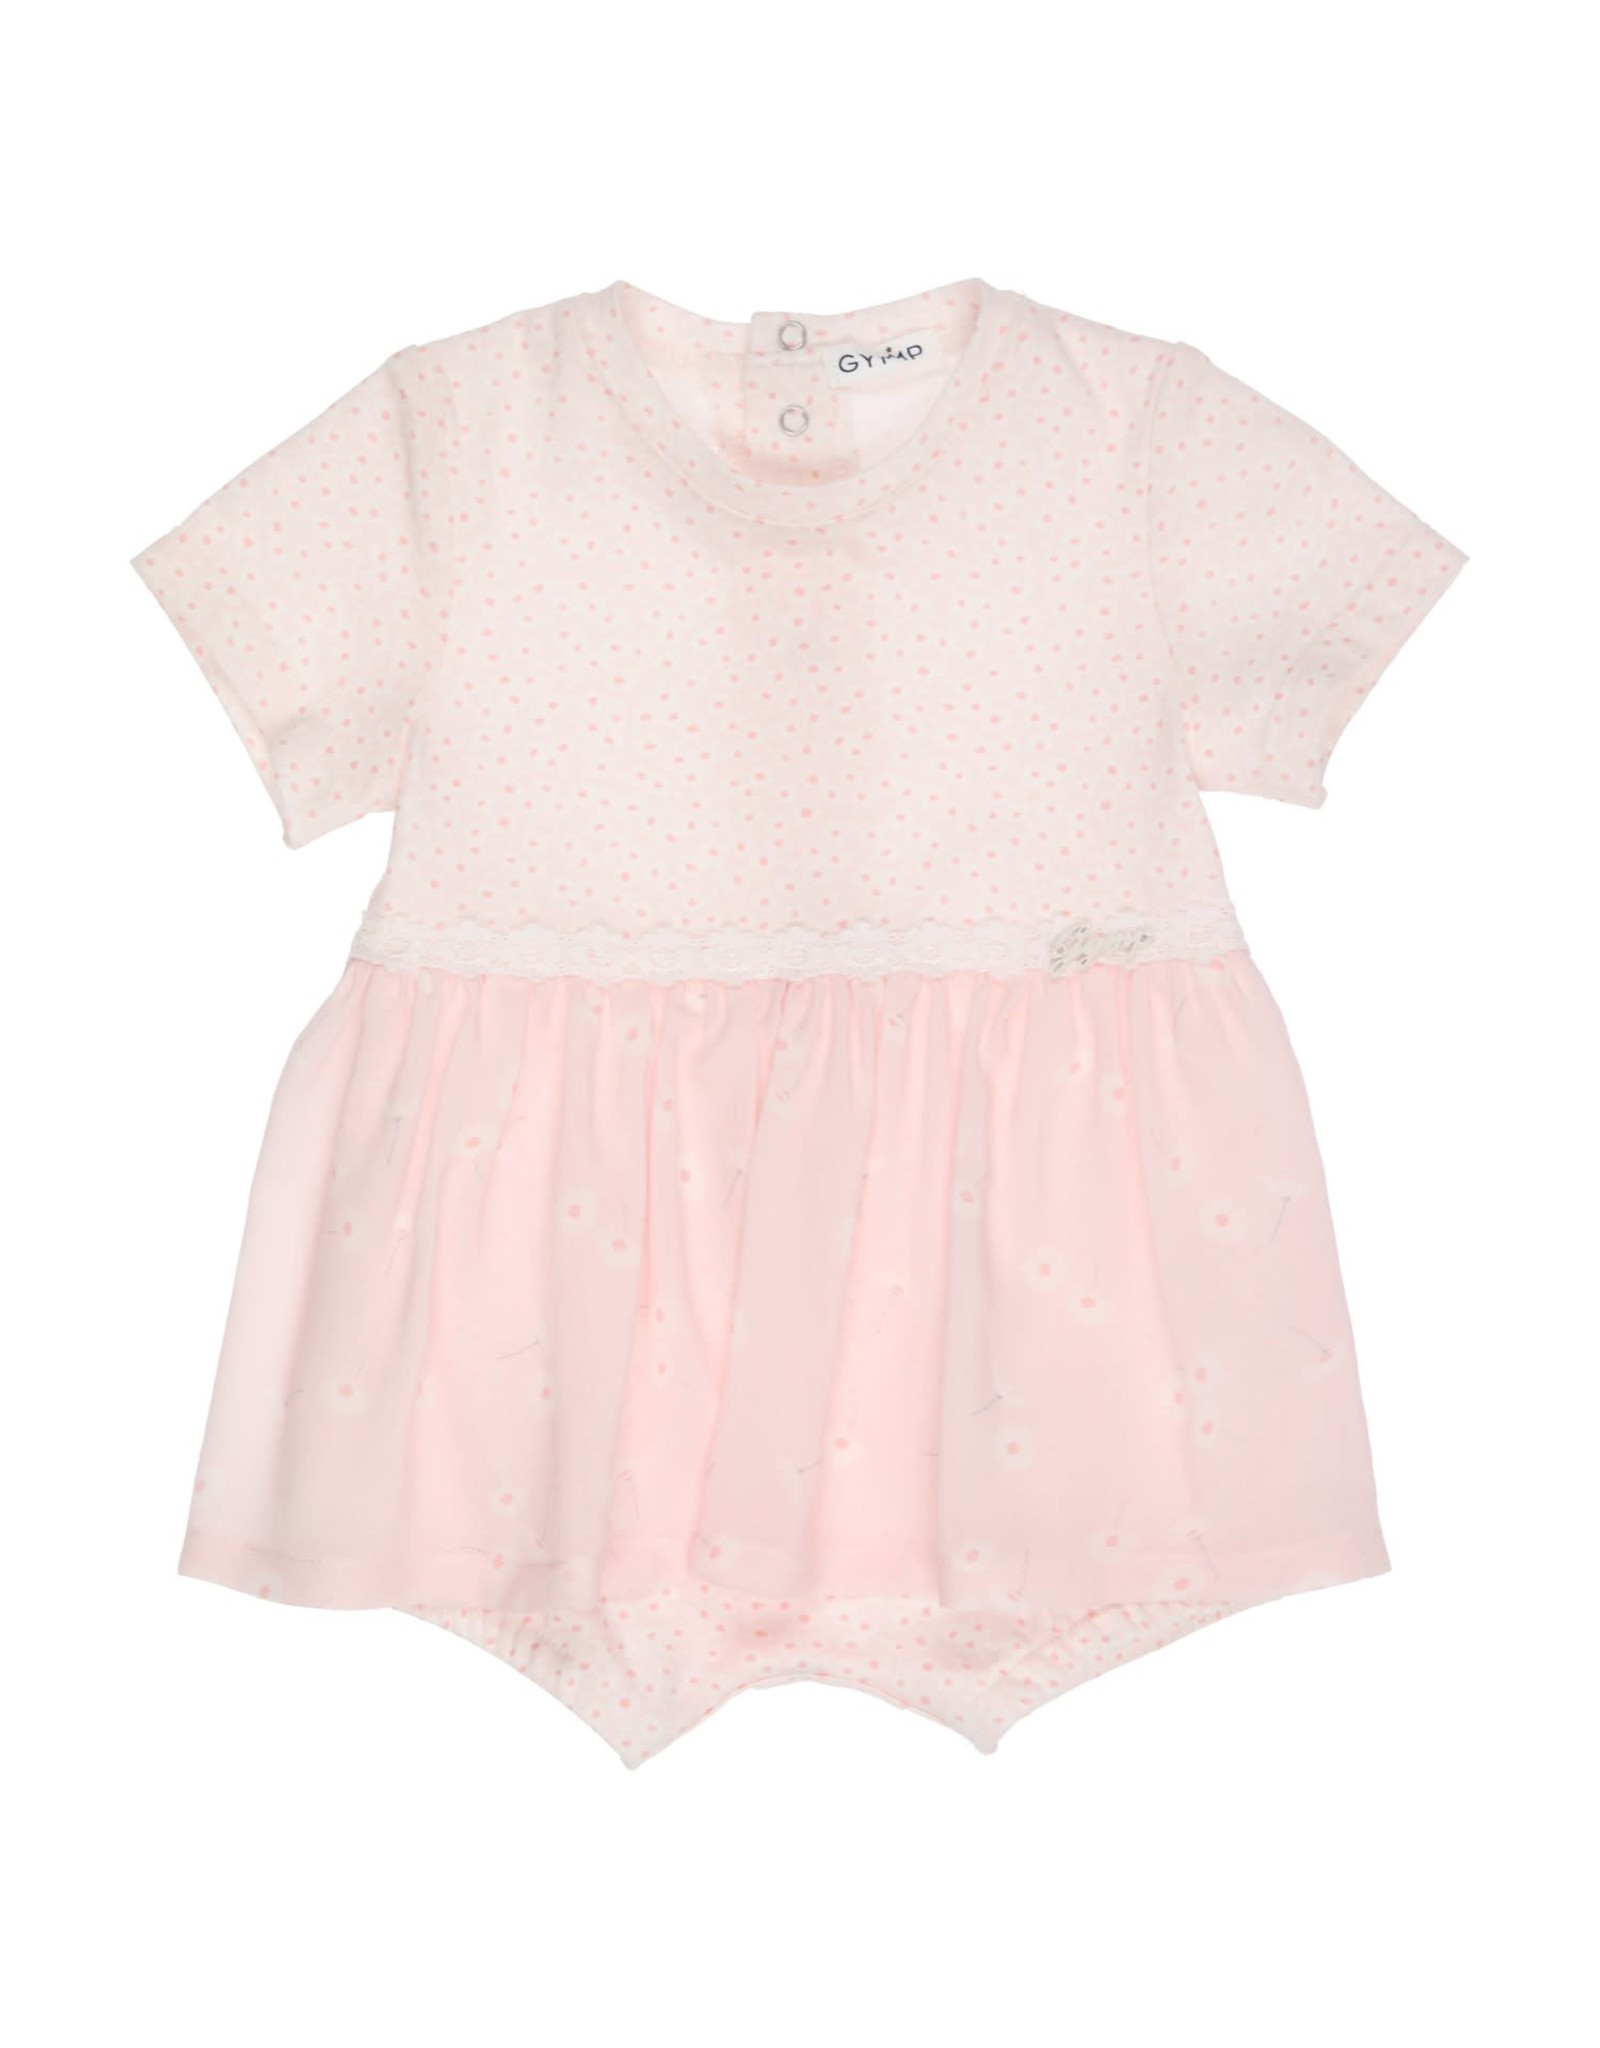 Gymp BABYPAKJE - ROMPER WITH SKIRT OFF-WHITE/VIEUX-ROSE